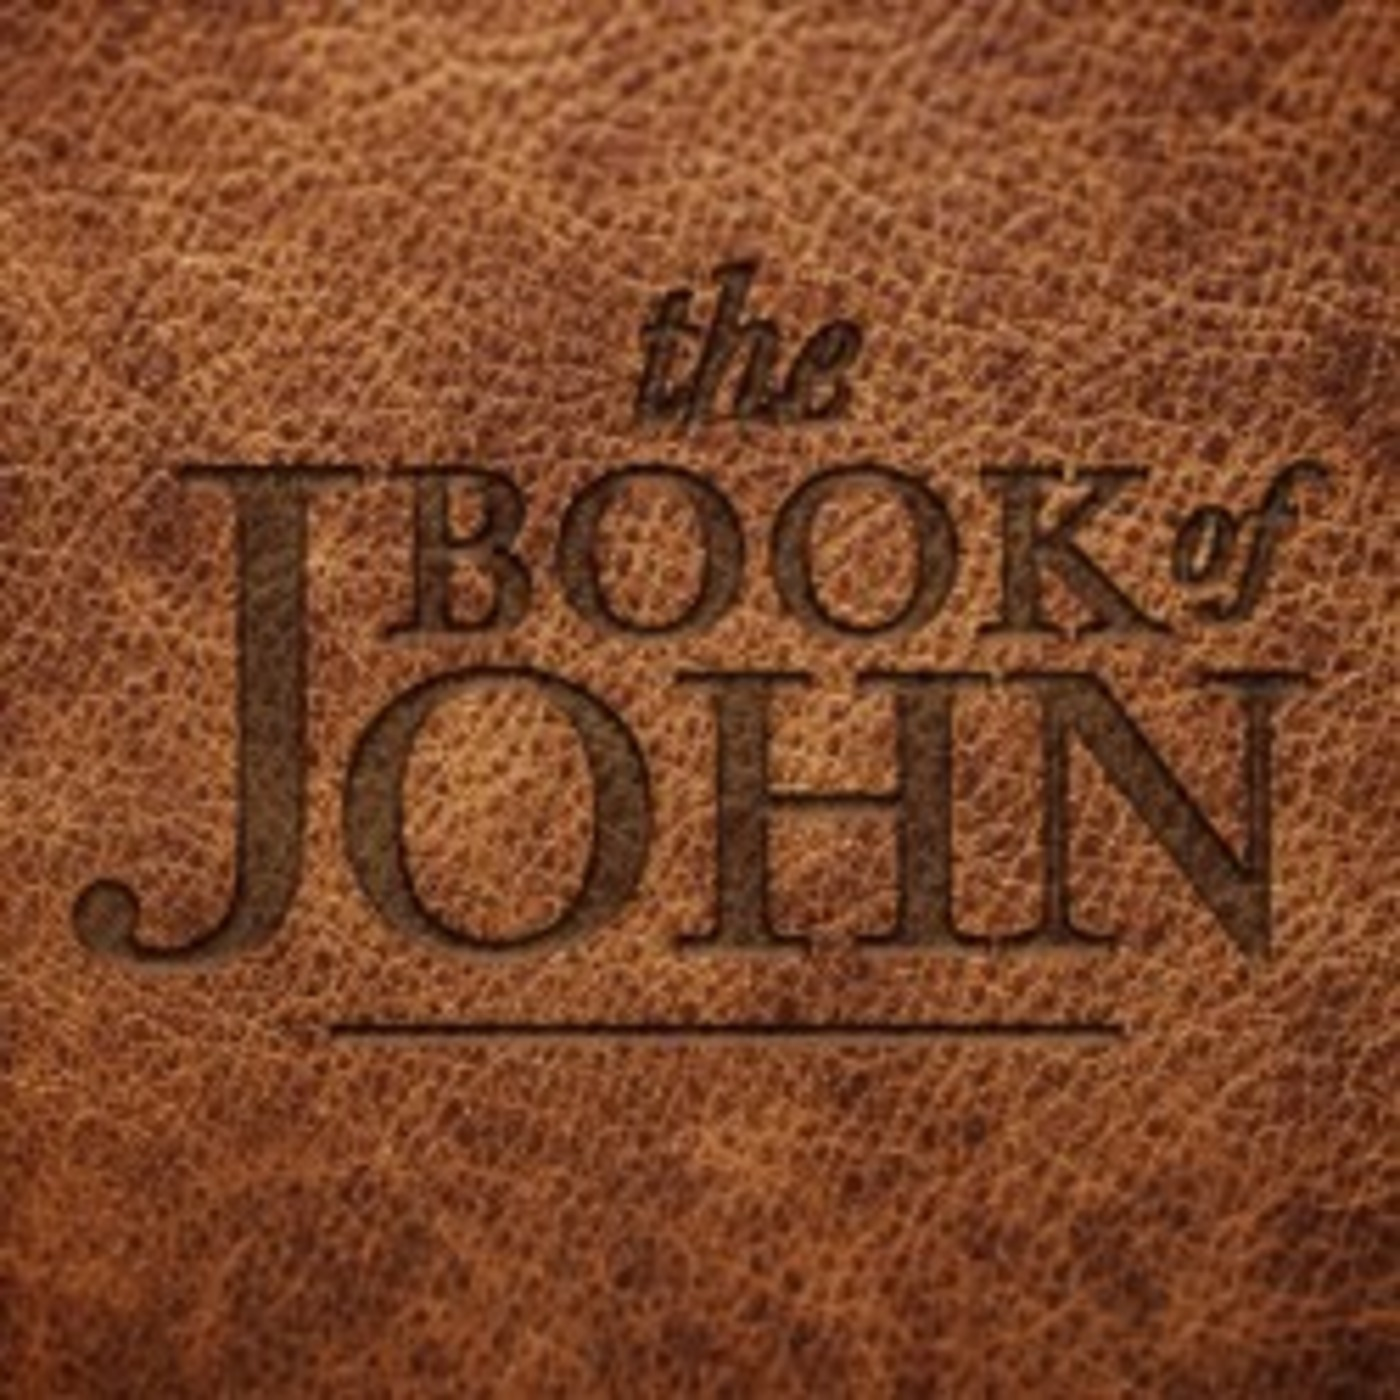 the book of john John 12 the book of john return to index chapter 13: 1: now before the feast of the passover, when jesus knew that his hour was come that he should depart out of this world unto the father, having loved his own which were in the world, he loved them unto the end 2.